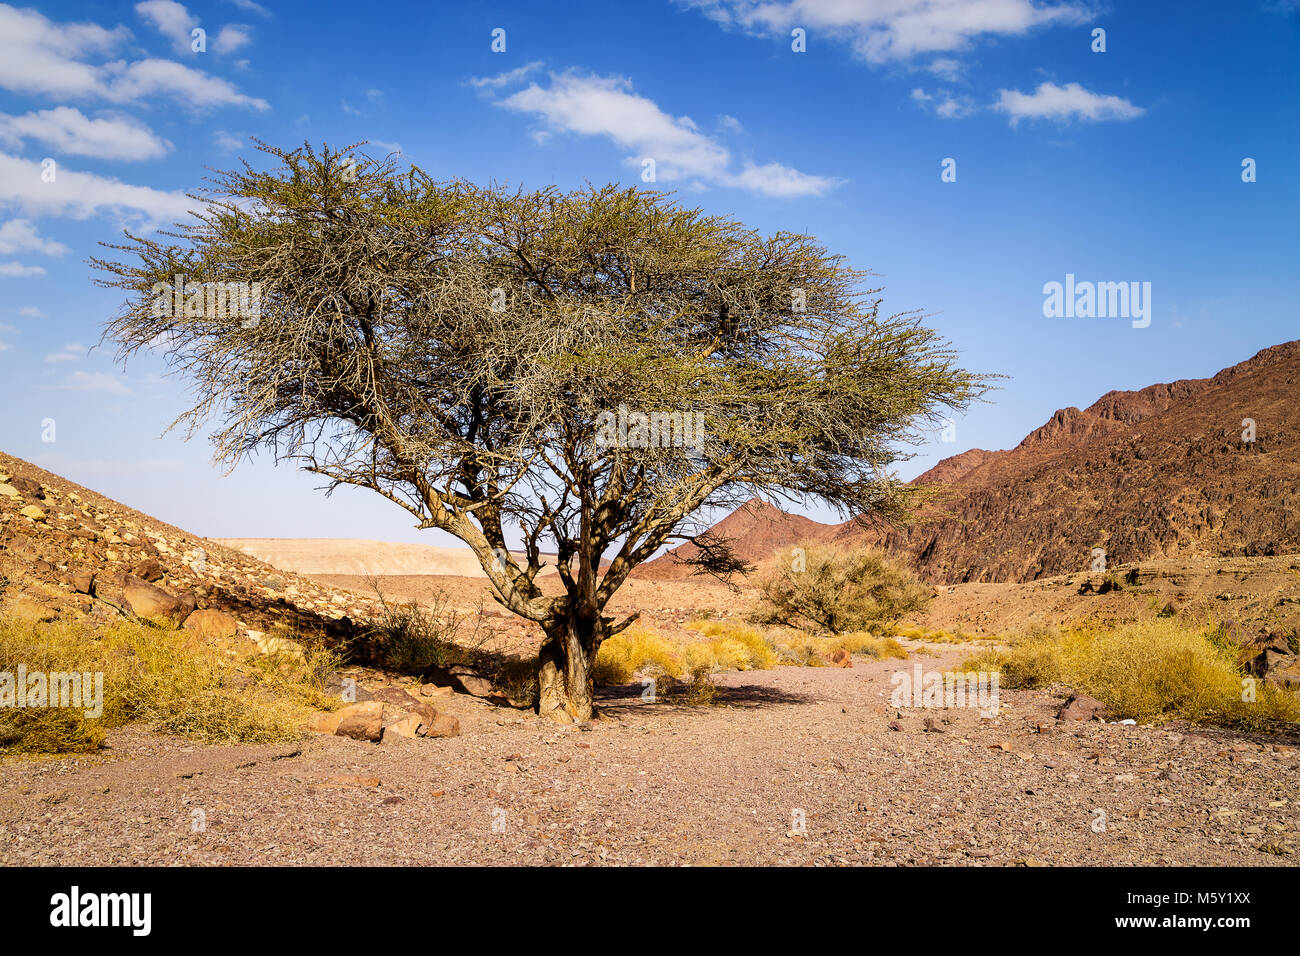 Lonely dry tree in valley of arid sandstone Negev desert near Eilat, Israel. Hiking pathway to Red canyon. - Stock Image